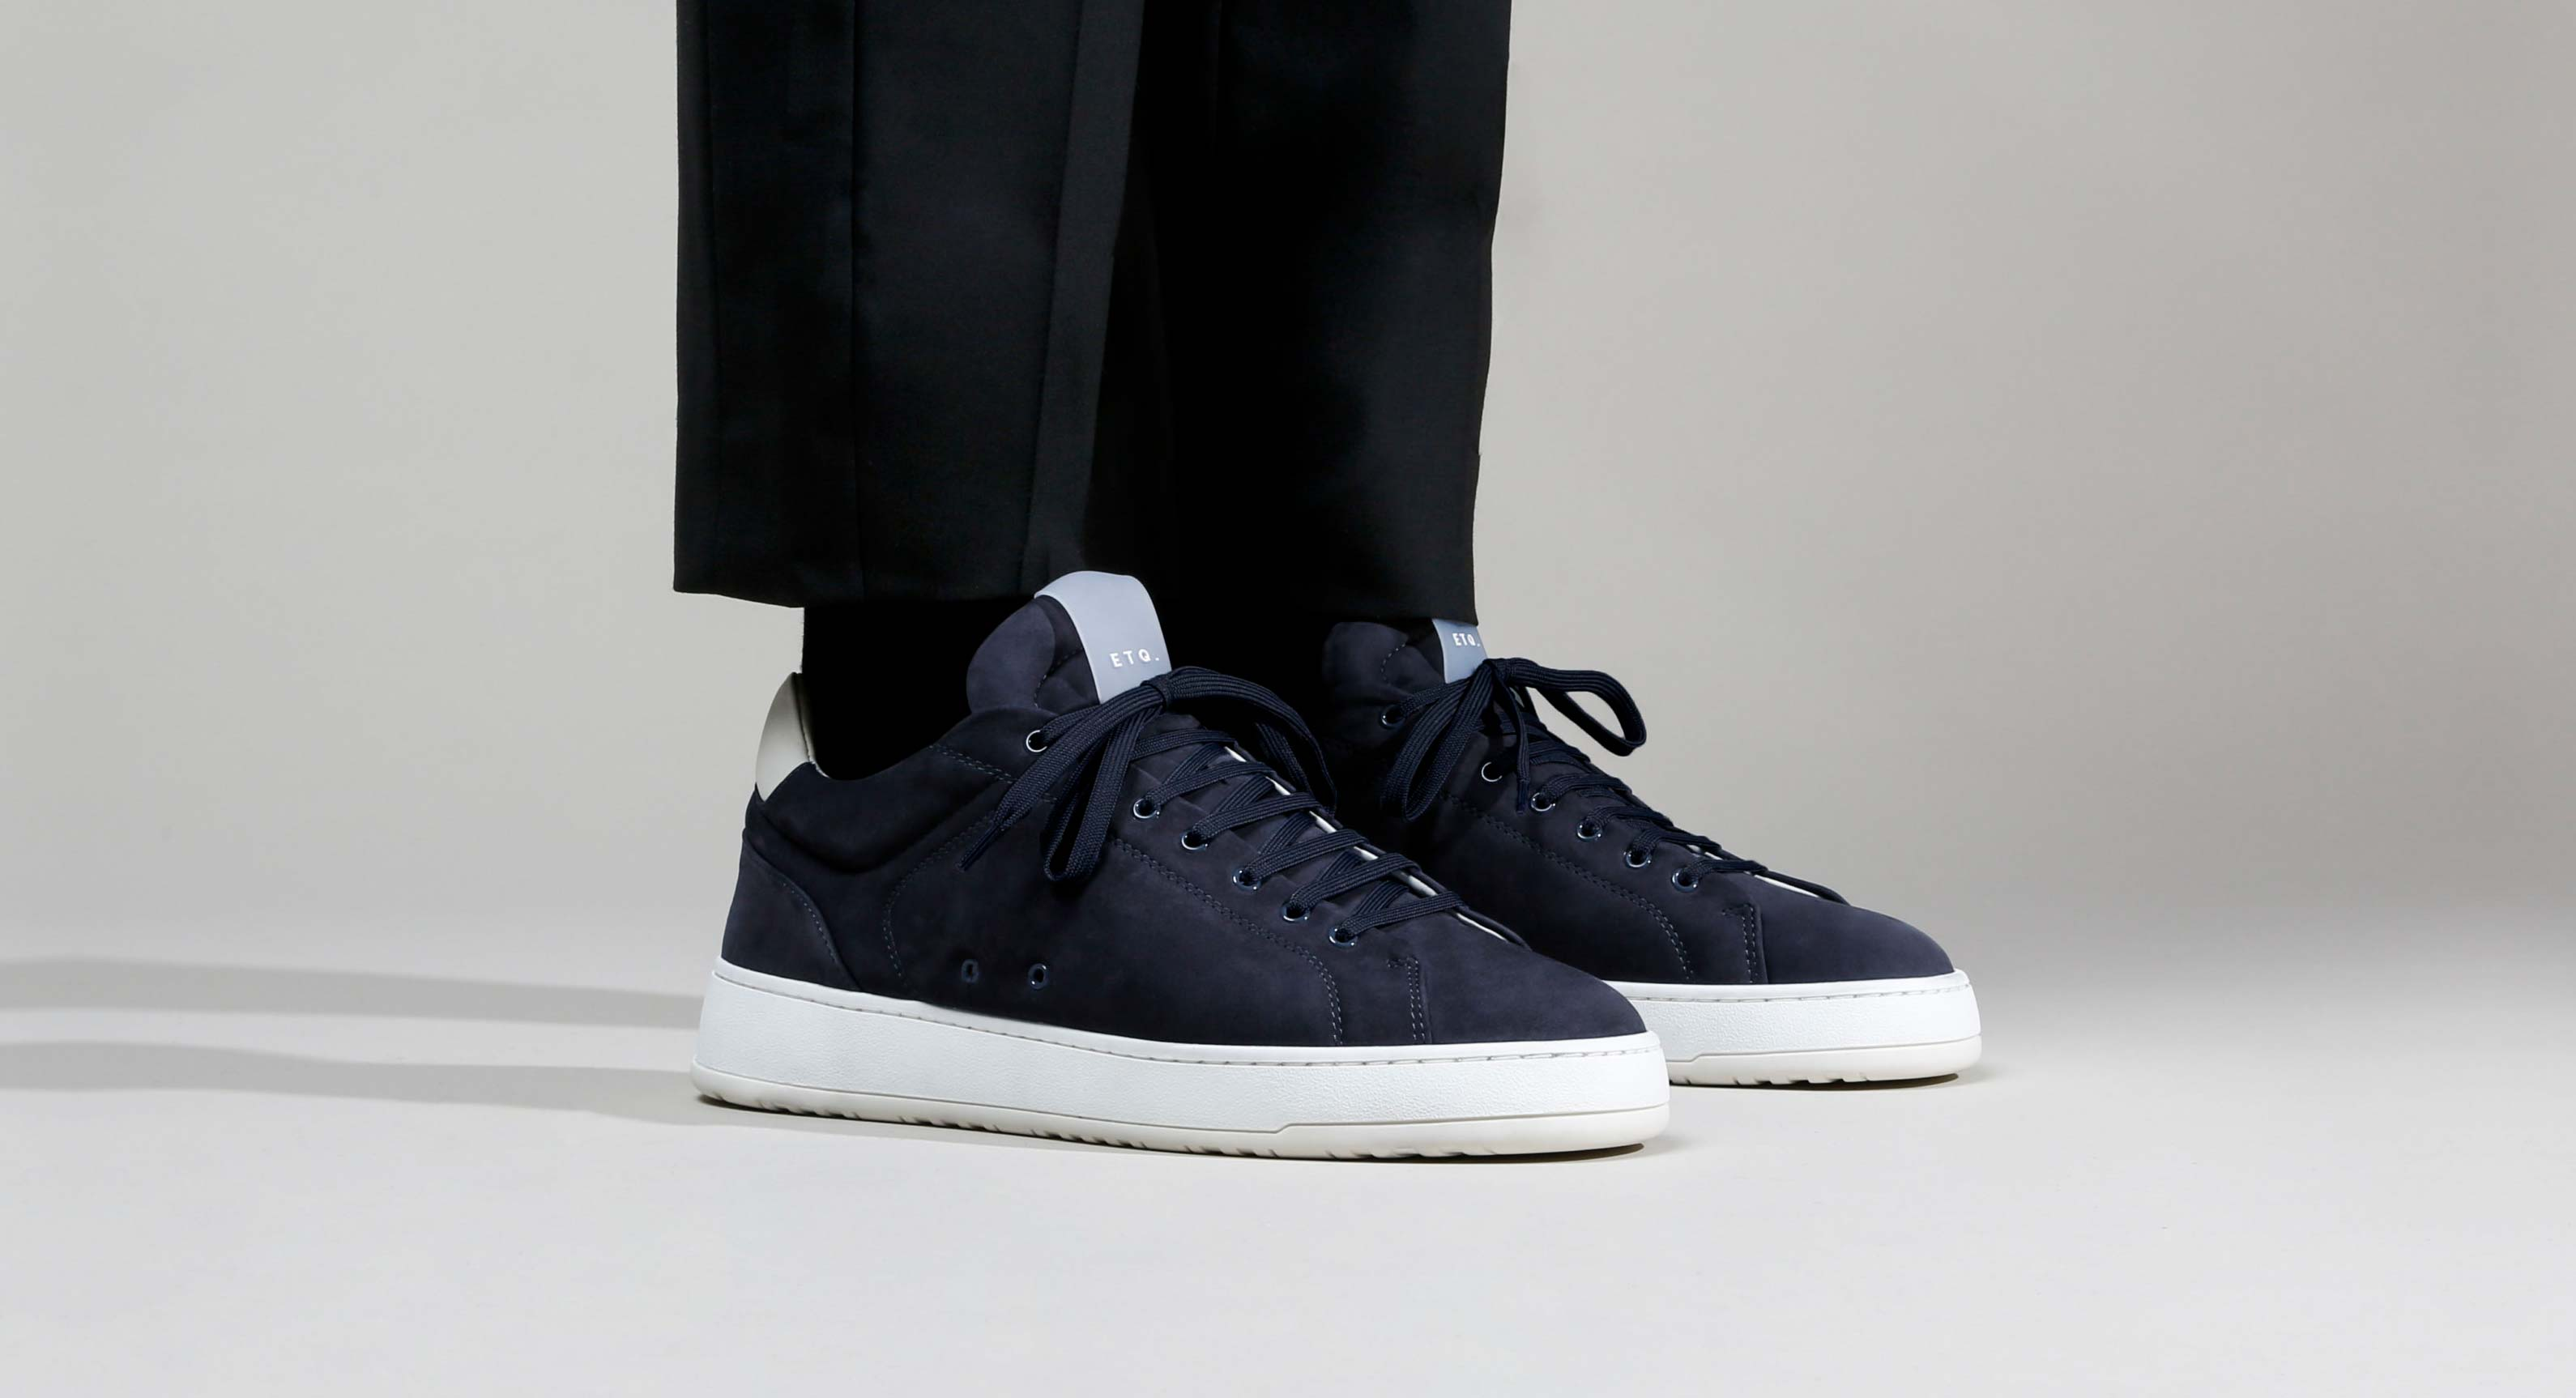 6 Of The Finest New Sneakers From ETQ Amsterdam